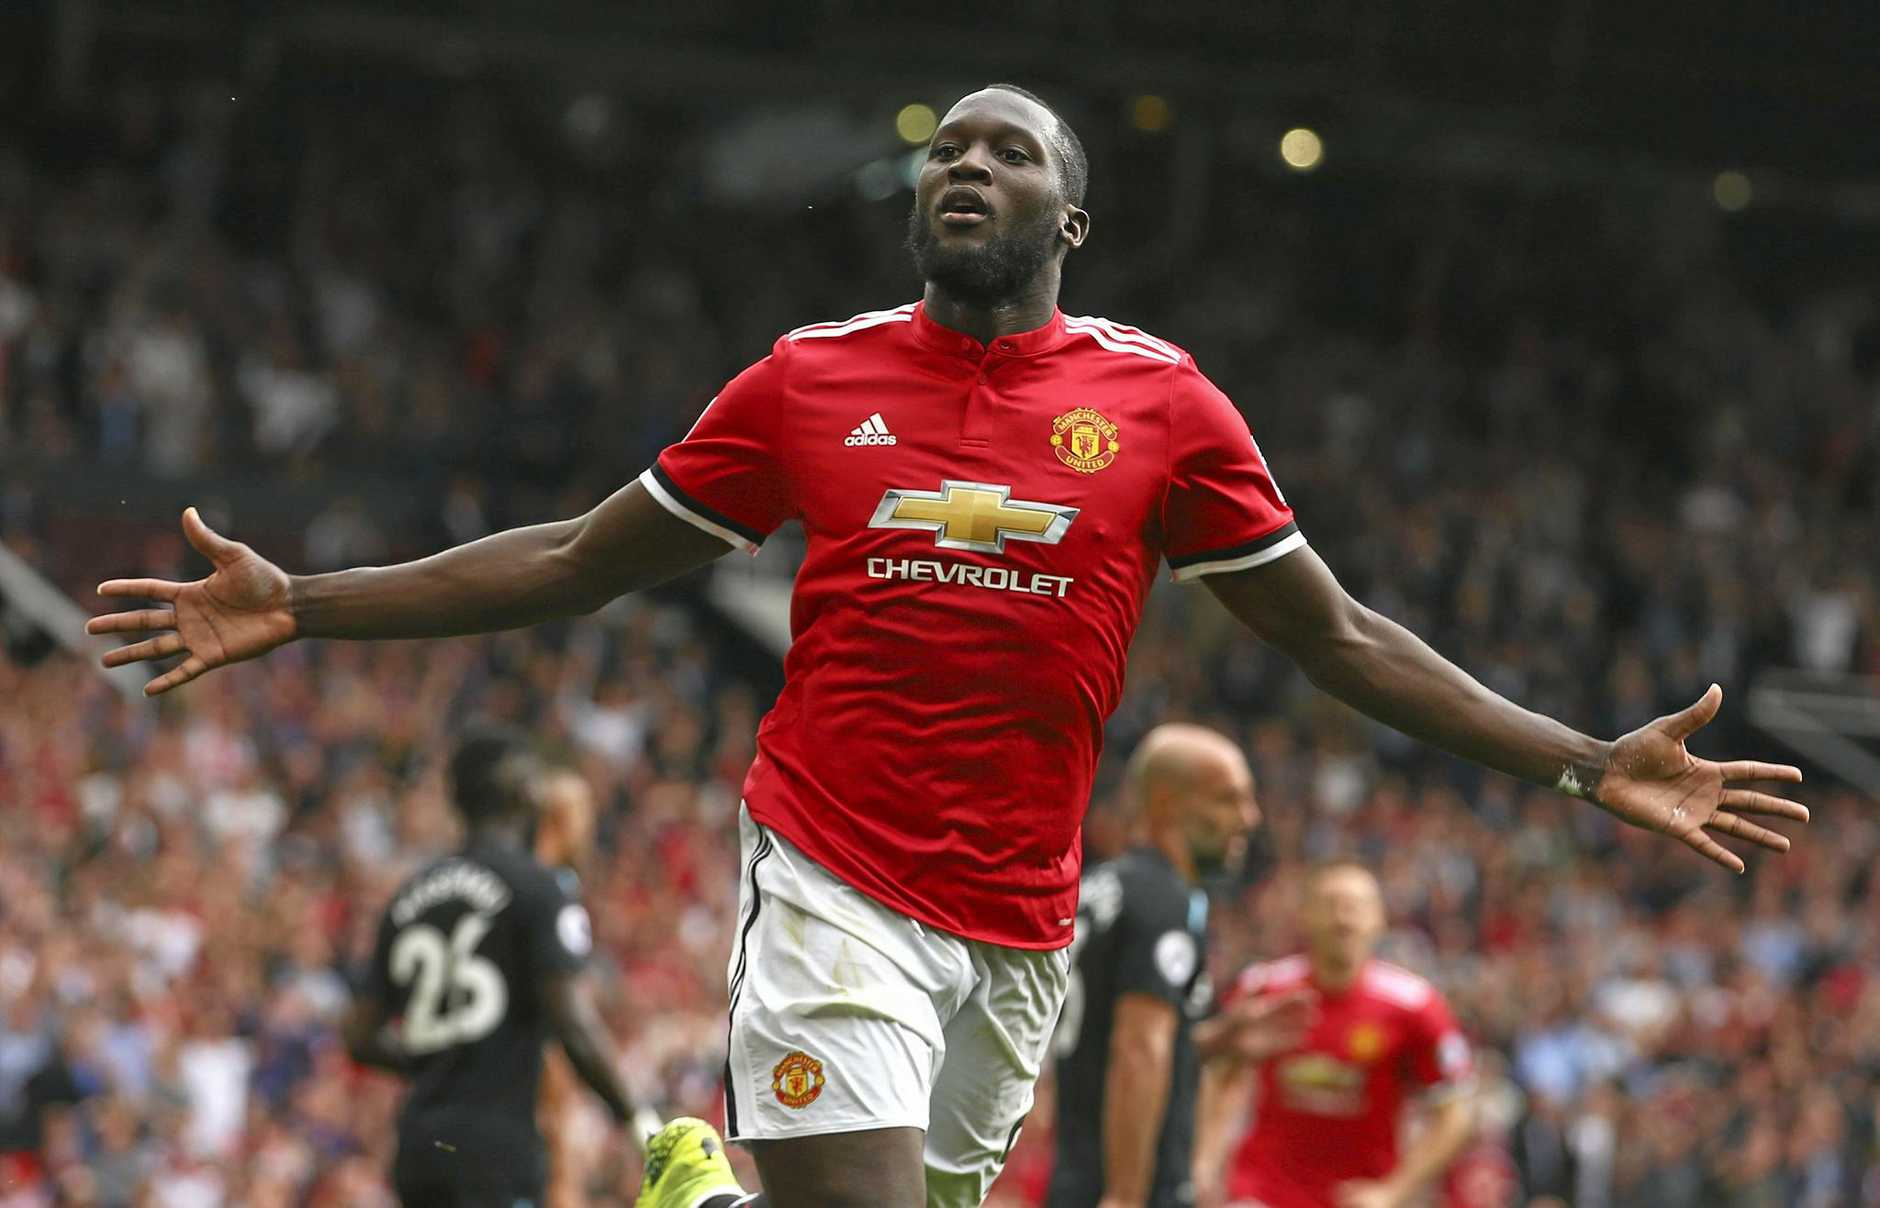 Manchester United's Romelu Lukaku celebrates scoring his second goal against West Ham.